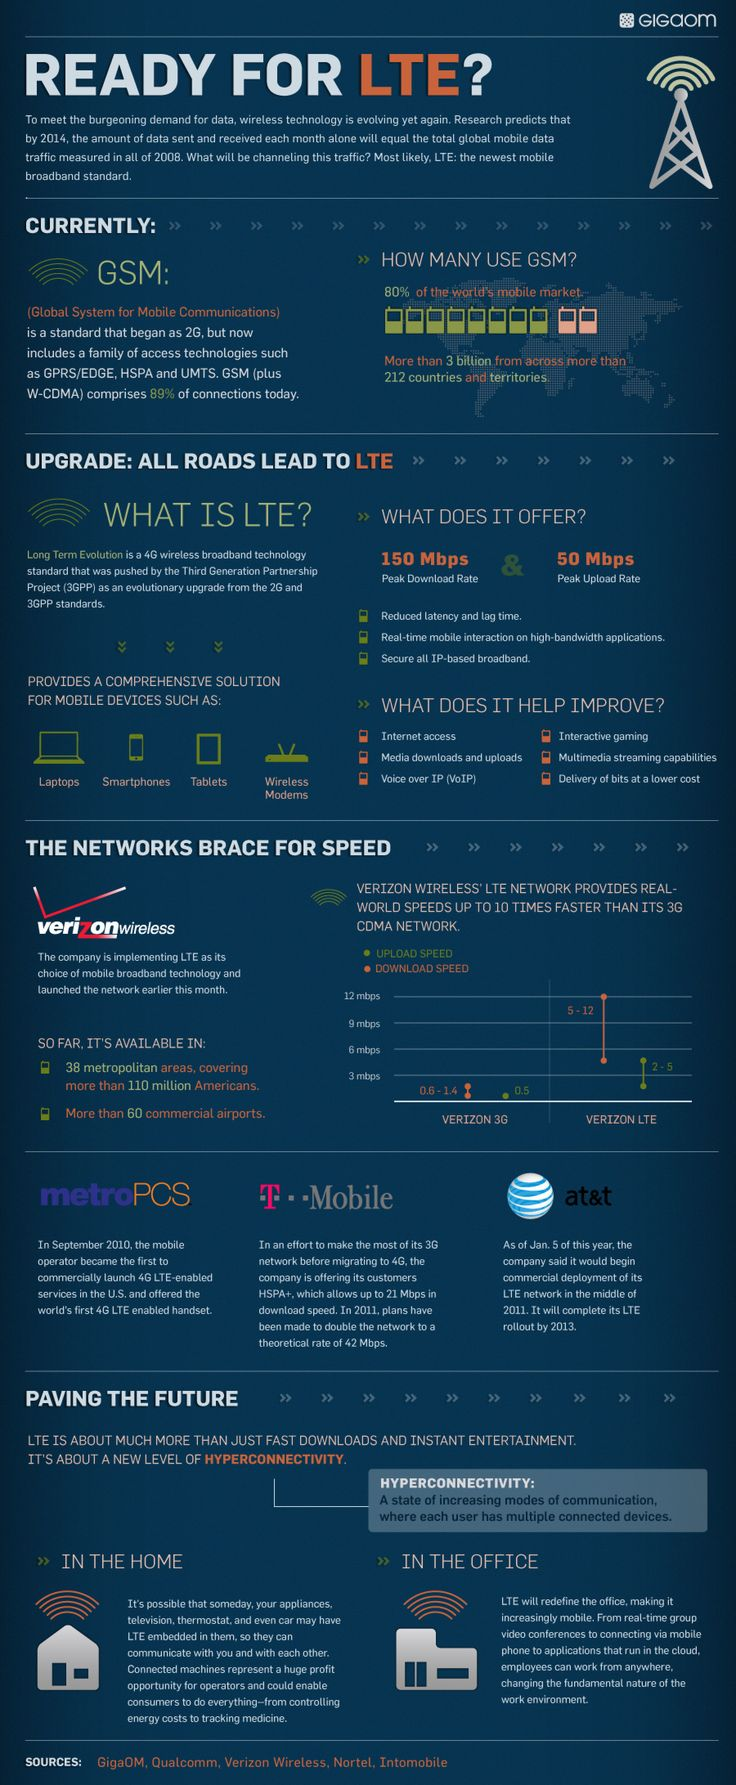 To meet the burgeoning demand for data, wireless technology is evolving yet again. Research predicts that by 2014 the amount of data sent and received each month alone will equal the total mobile data traffic measure in all of 2008. In this infographic, for GigaOm, we elaborate on the groundbreaking technology through which we will be channeling this mobile traffic, Long Term Evolution.